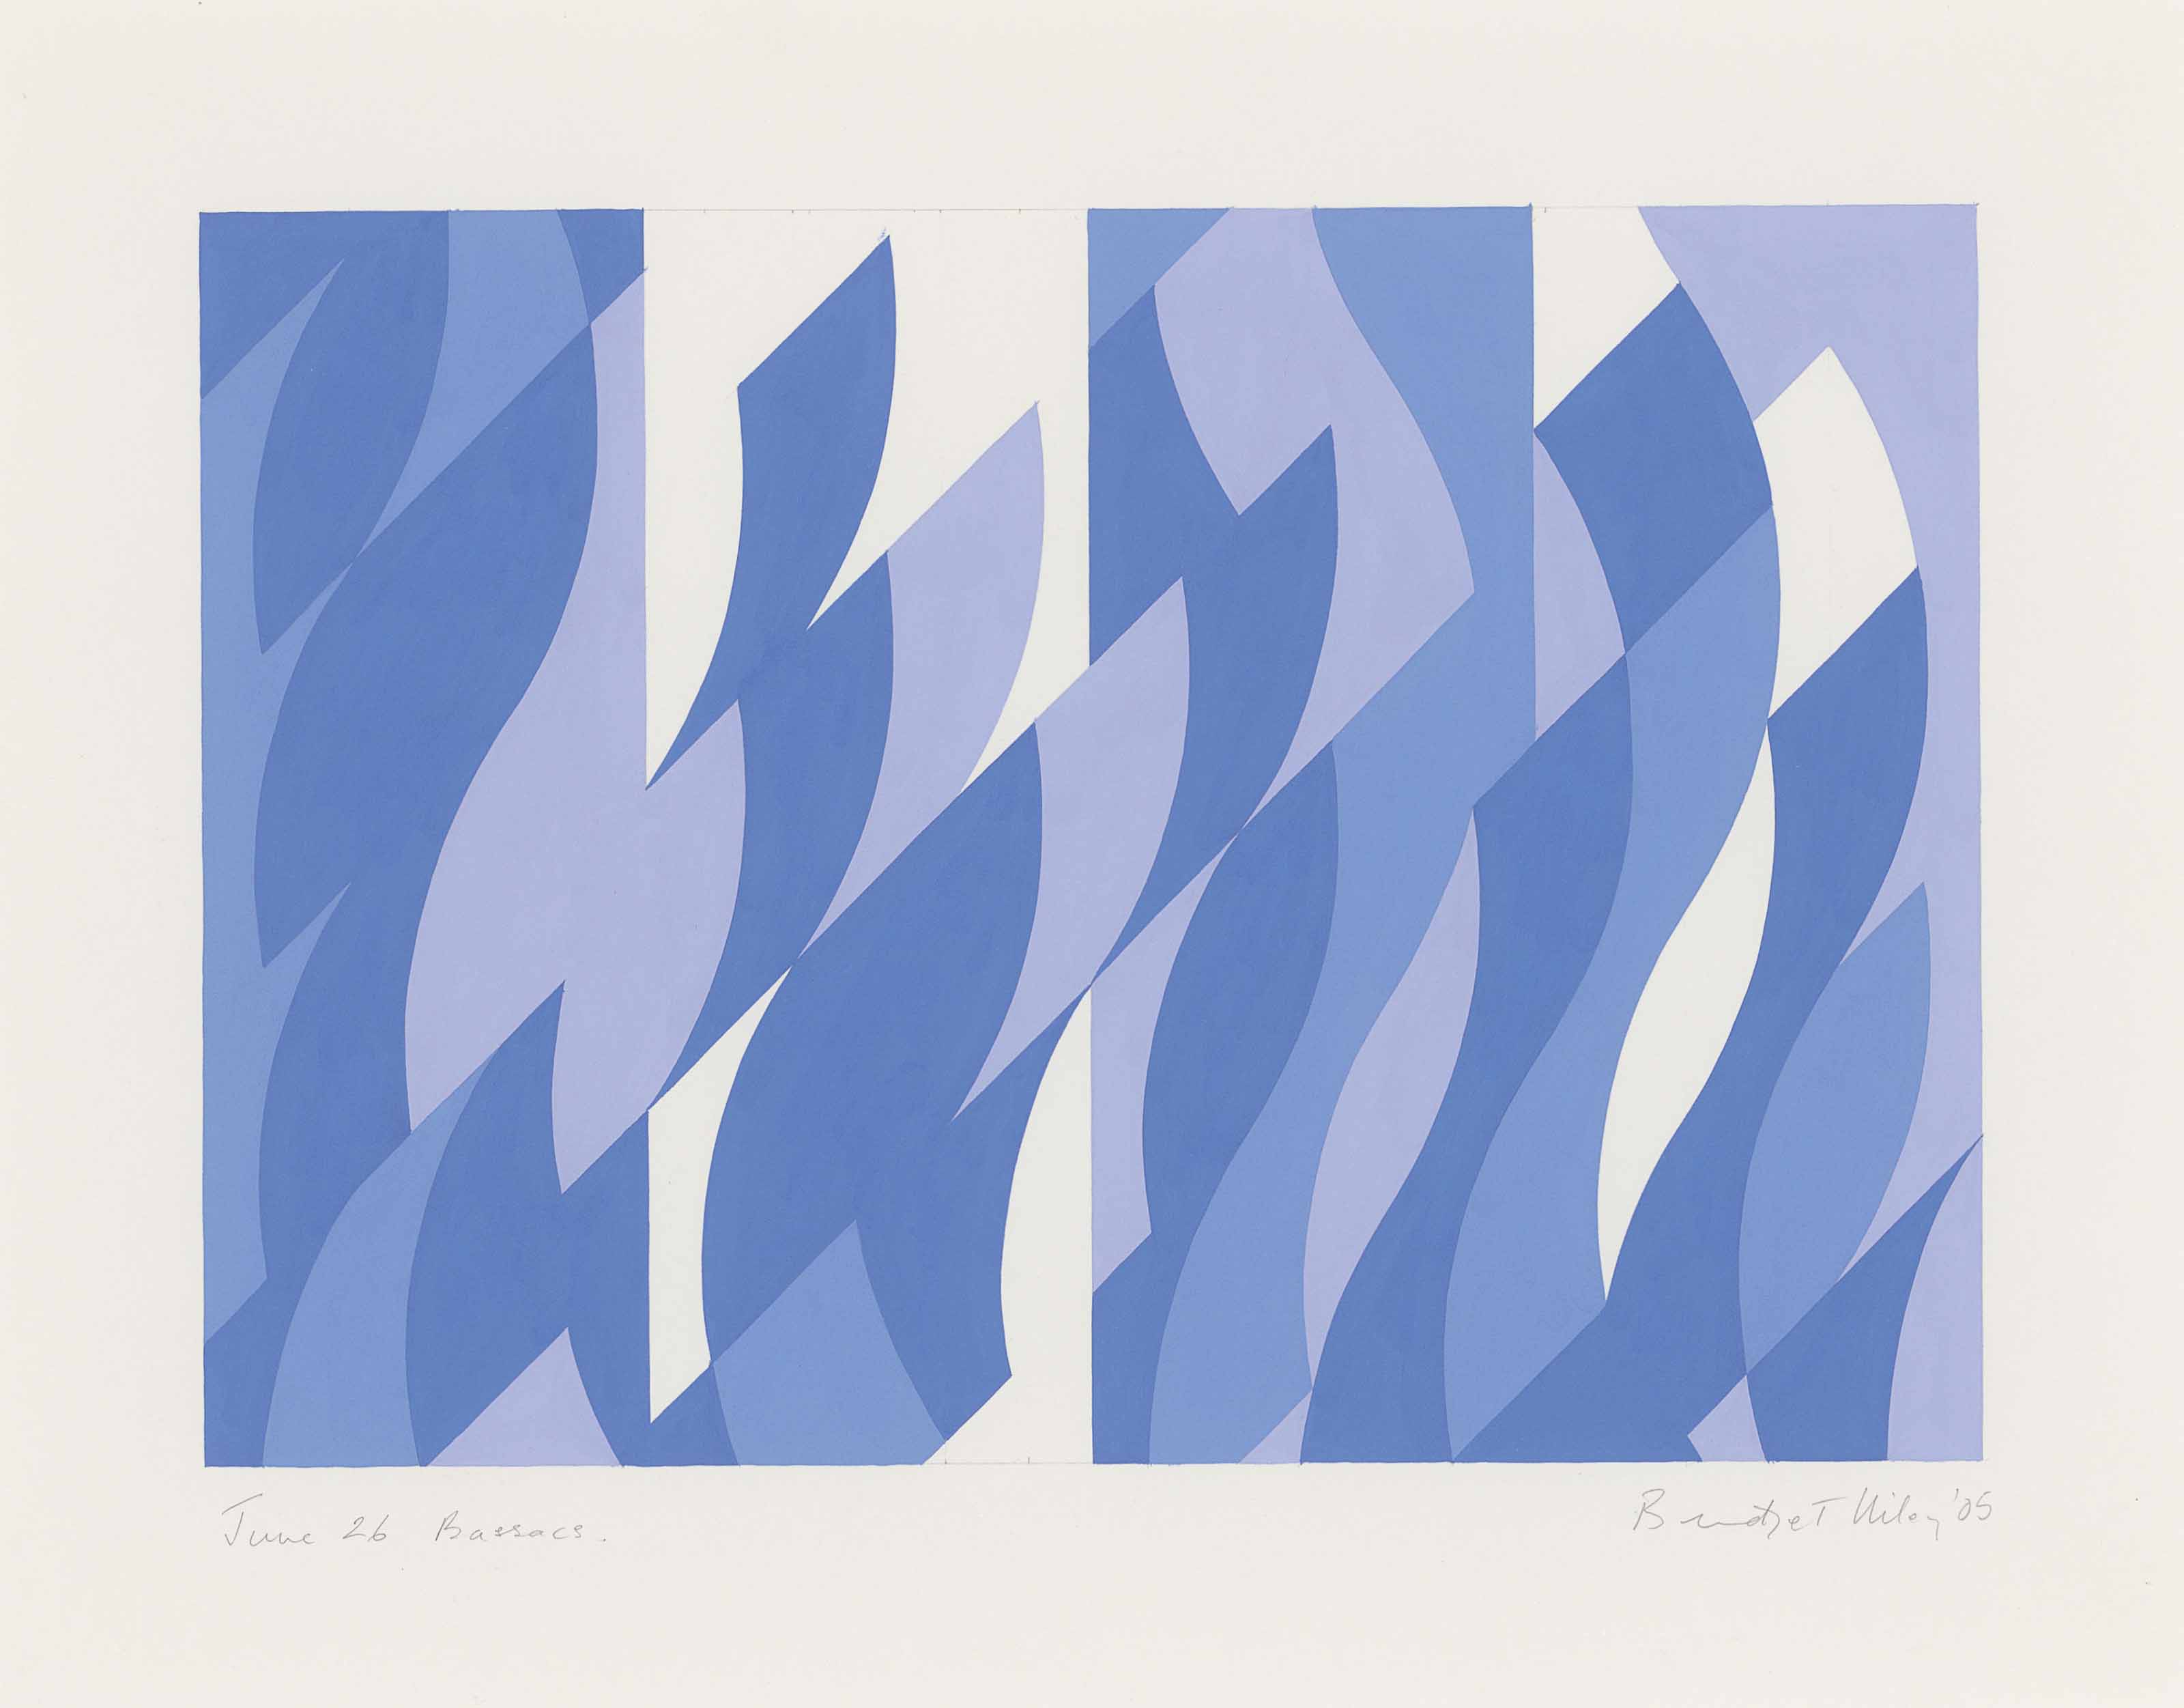 Bridget Riley (b. 1931), June 26 Bassacs, 2005. 17⅝ x 22⅜ in (44.6 x 57 cm). Estimate £20,000-30,000. This lot is offered in the Post-War and Contemporary Art Day Auction on 7 March 2018 at Christie's in London